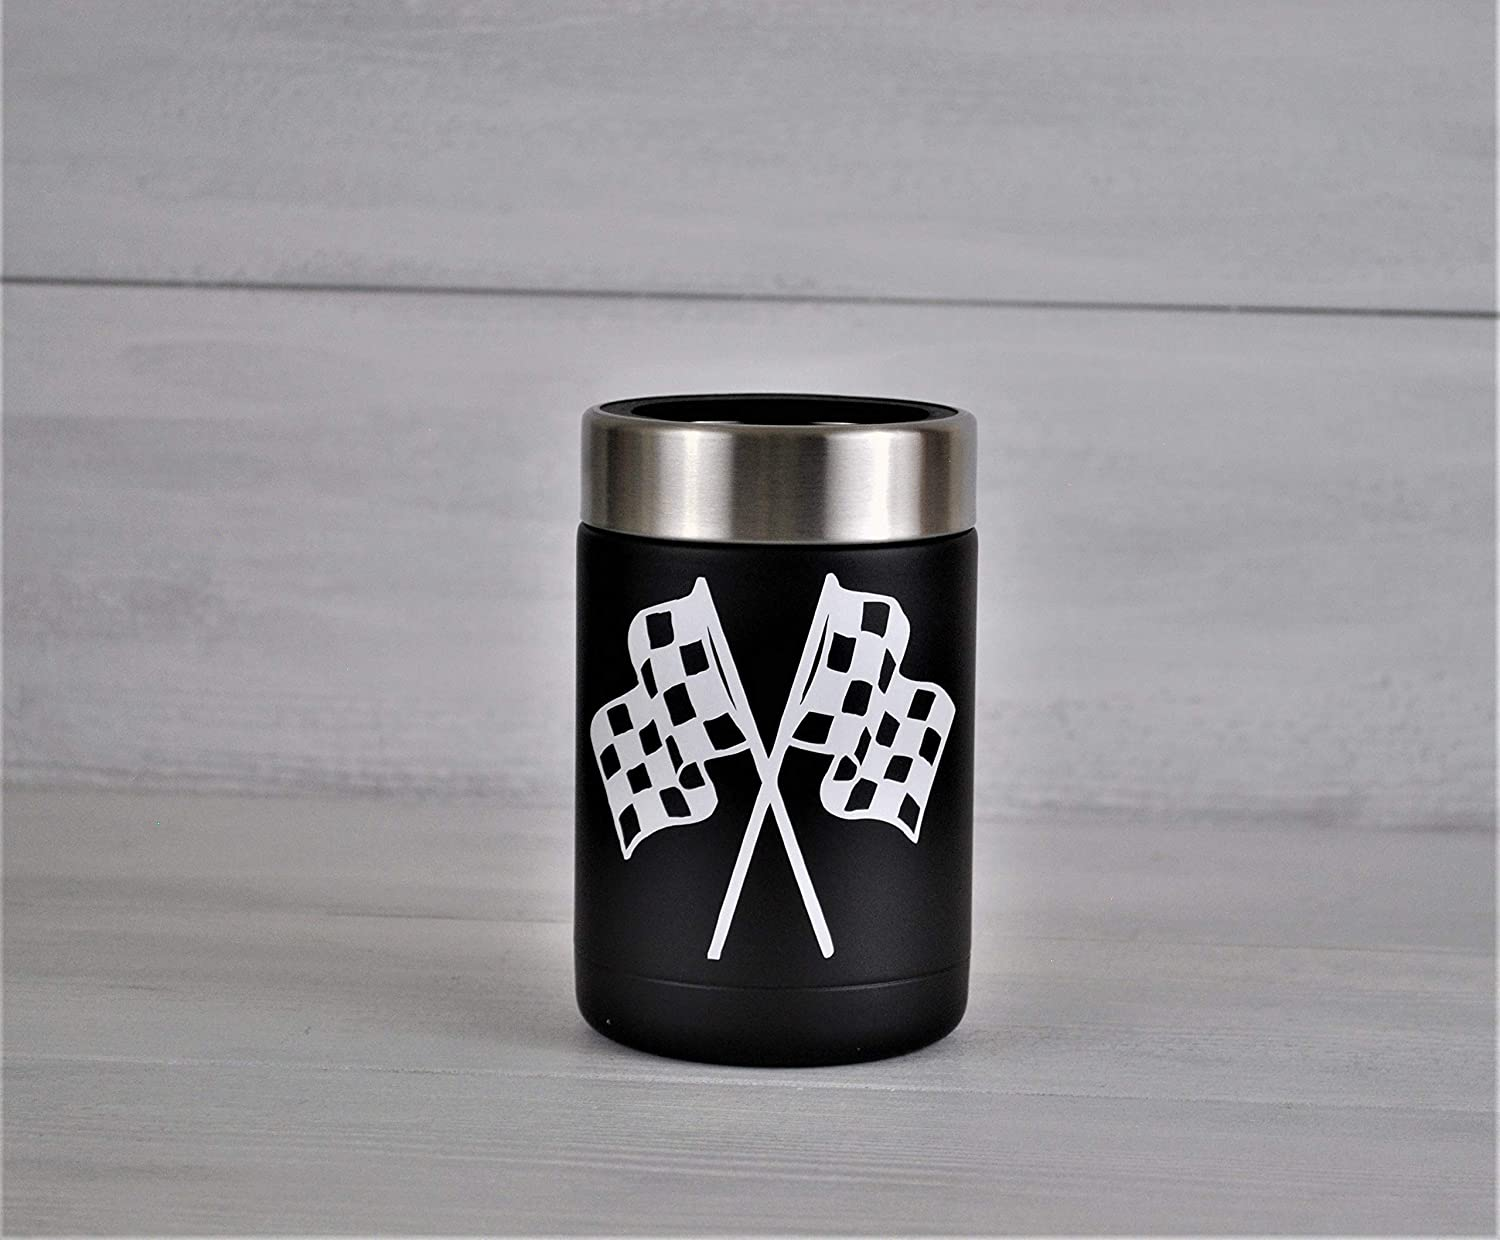 Racing Gift Nascar Gift Rtic Can Cooler Fathers Day gift,Dirt Track Racing,Beer cooler,Motorsports Beer Gift Checkered Flags Can Cooler